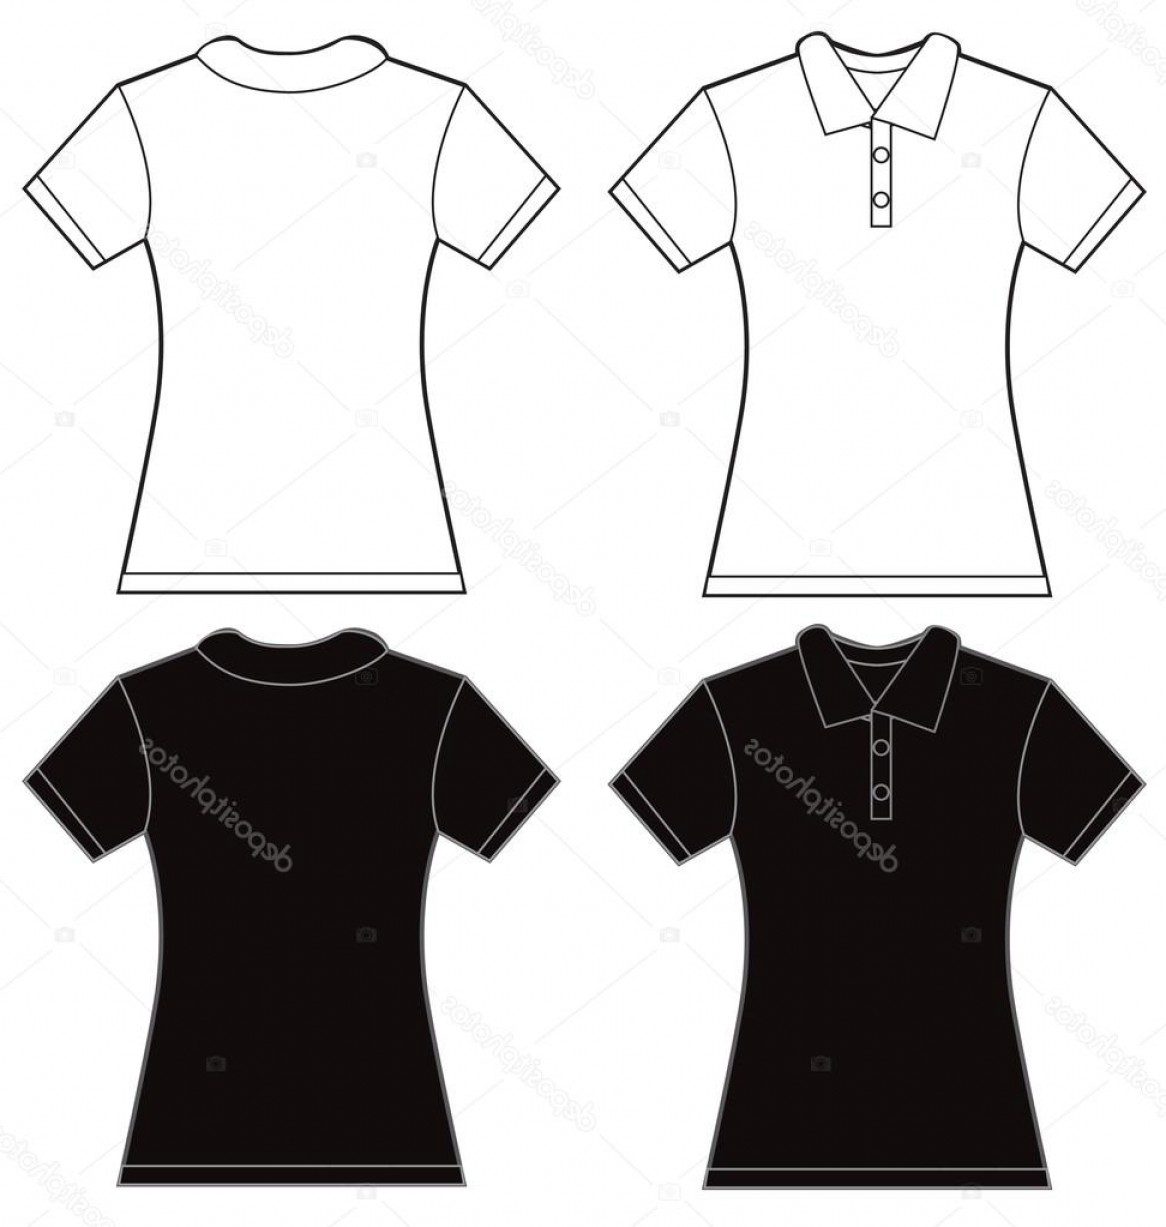 Female Polo Shirt Vector Template: Stock Illustration Black White Womens Polo Shirt